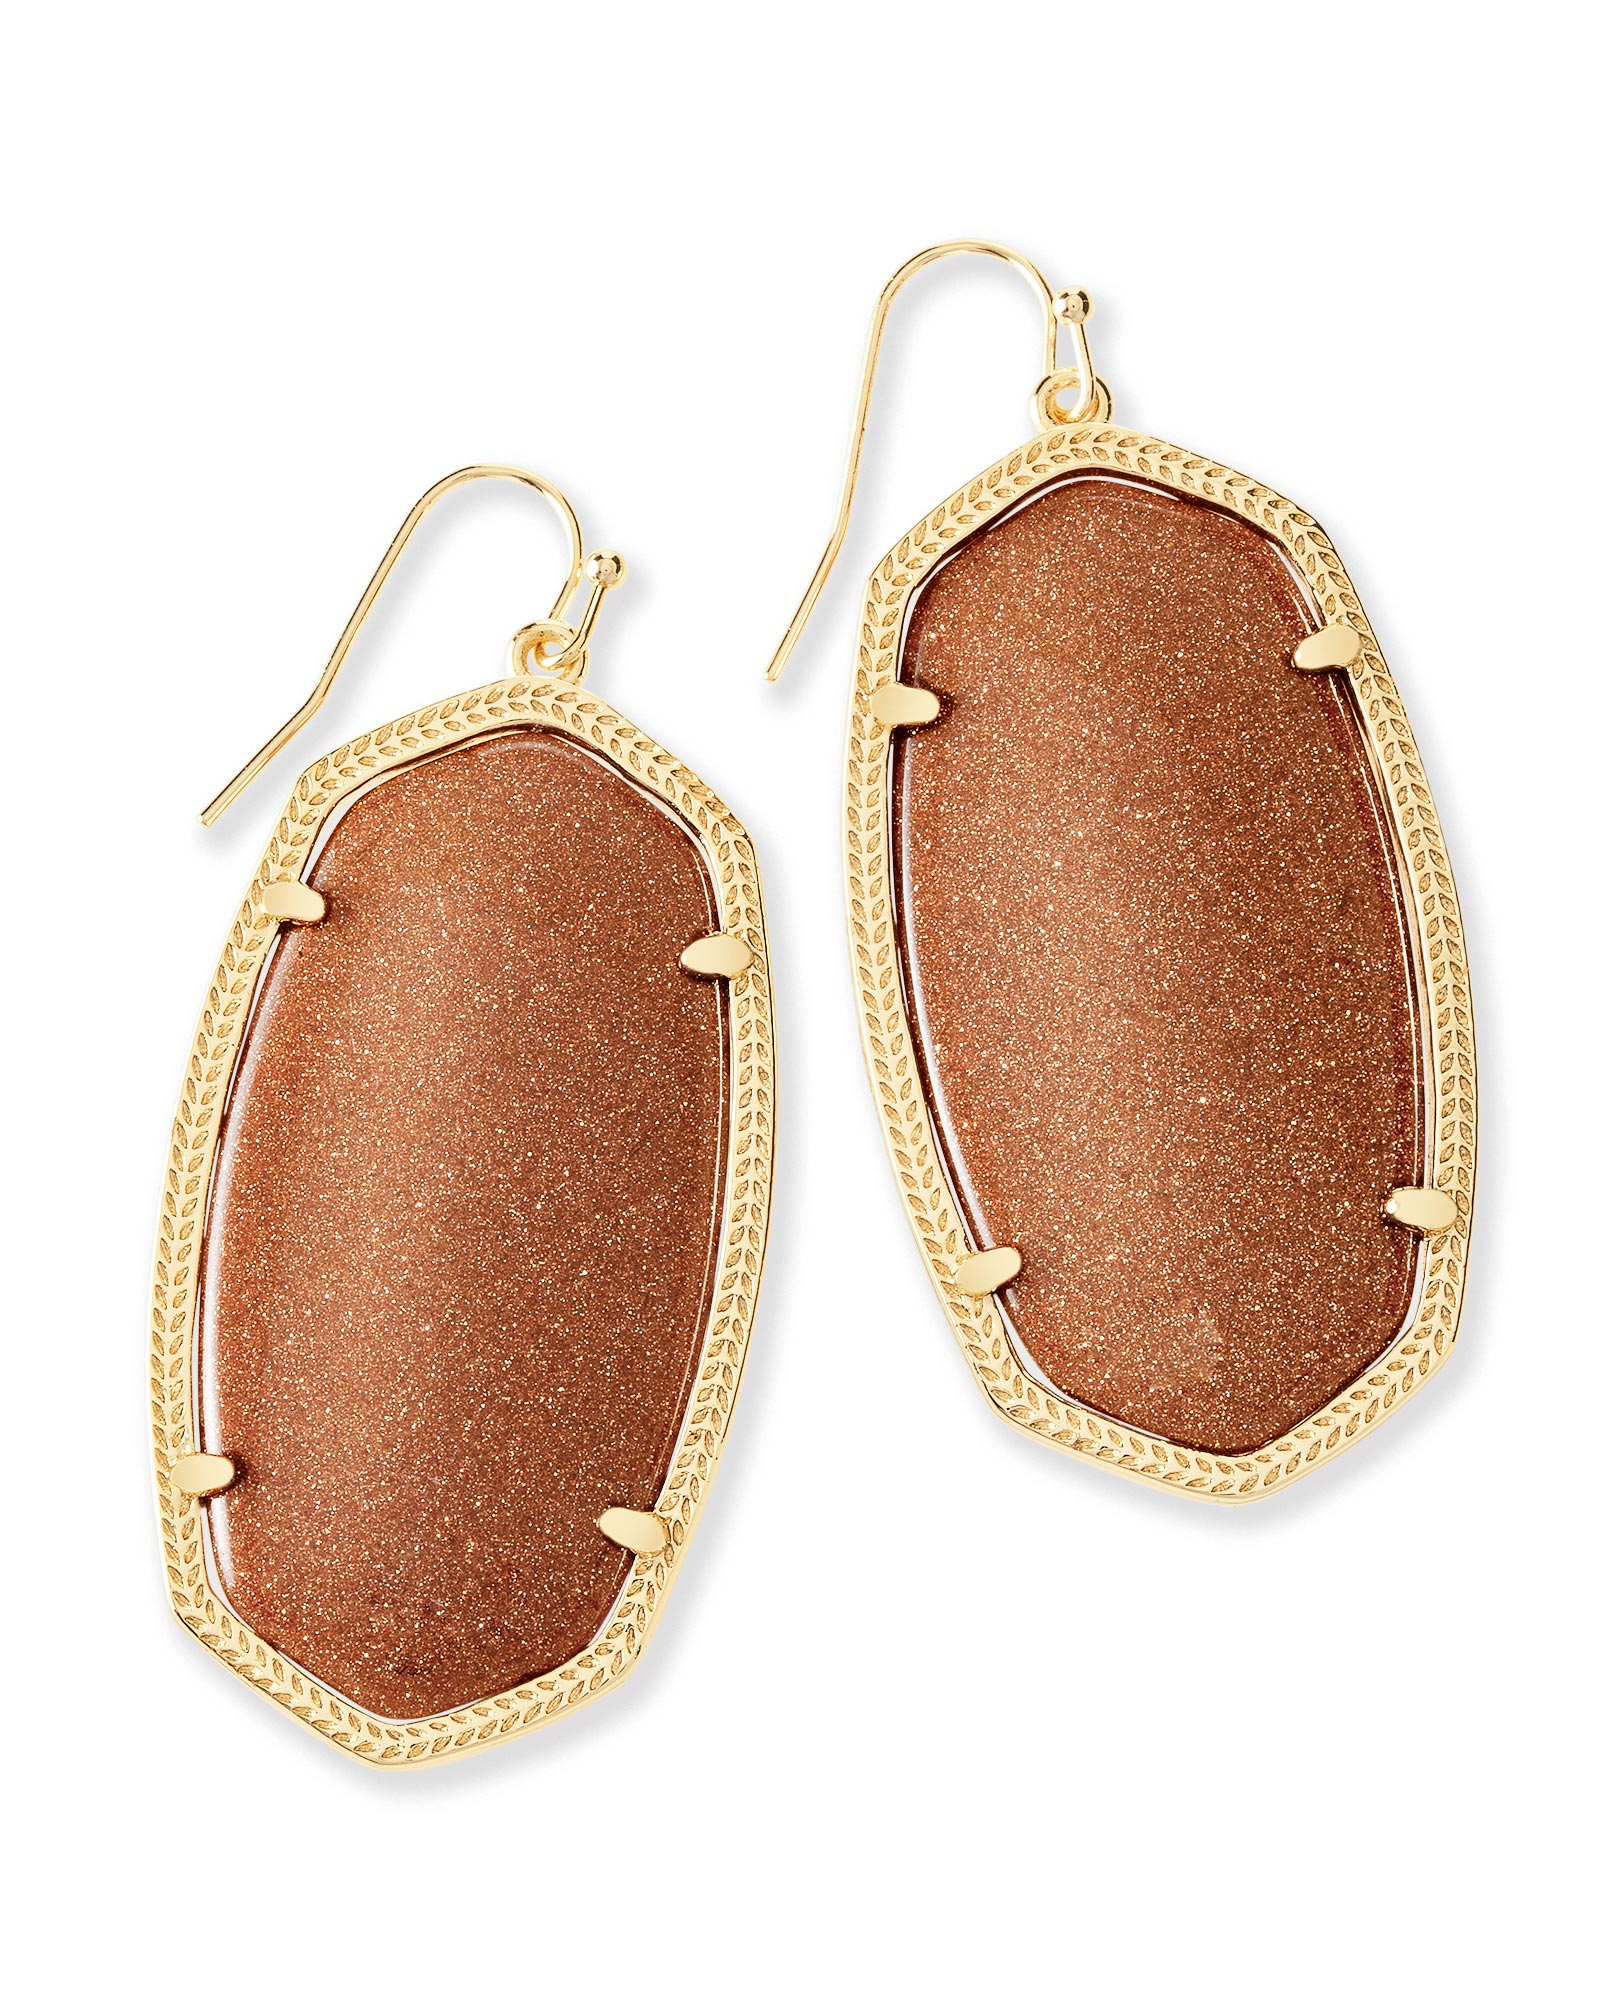 Danielle Earrings in Goldstone